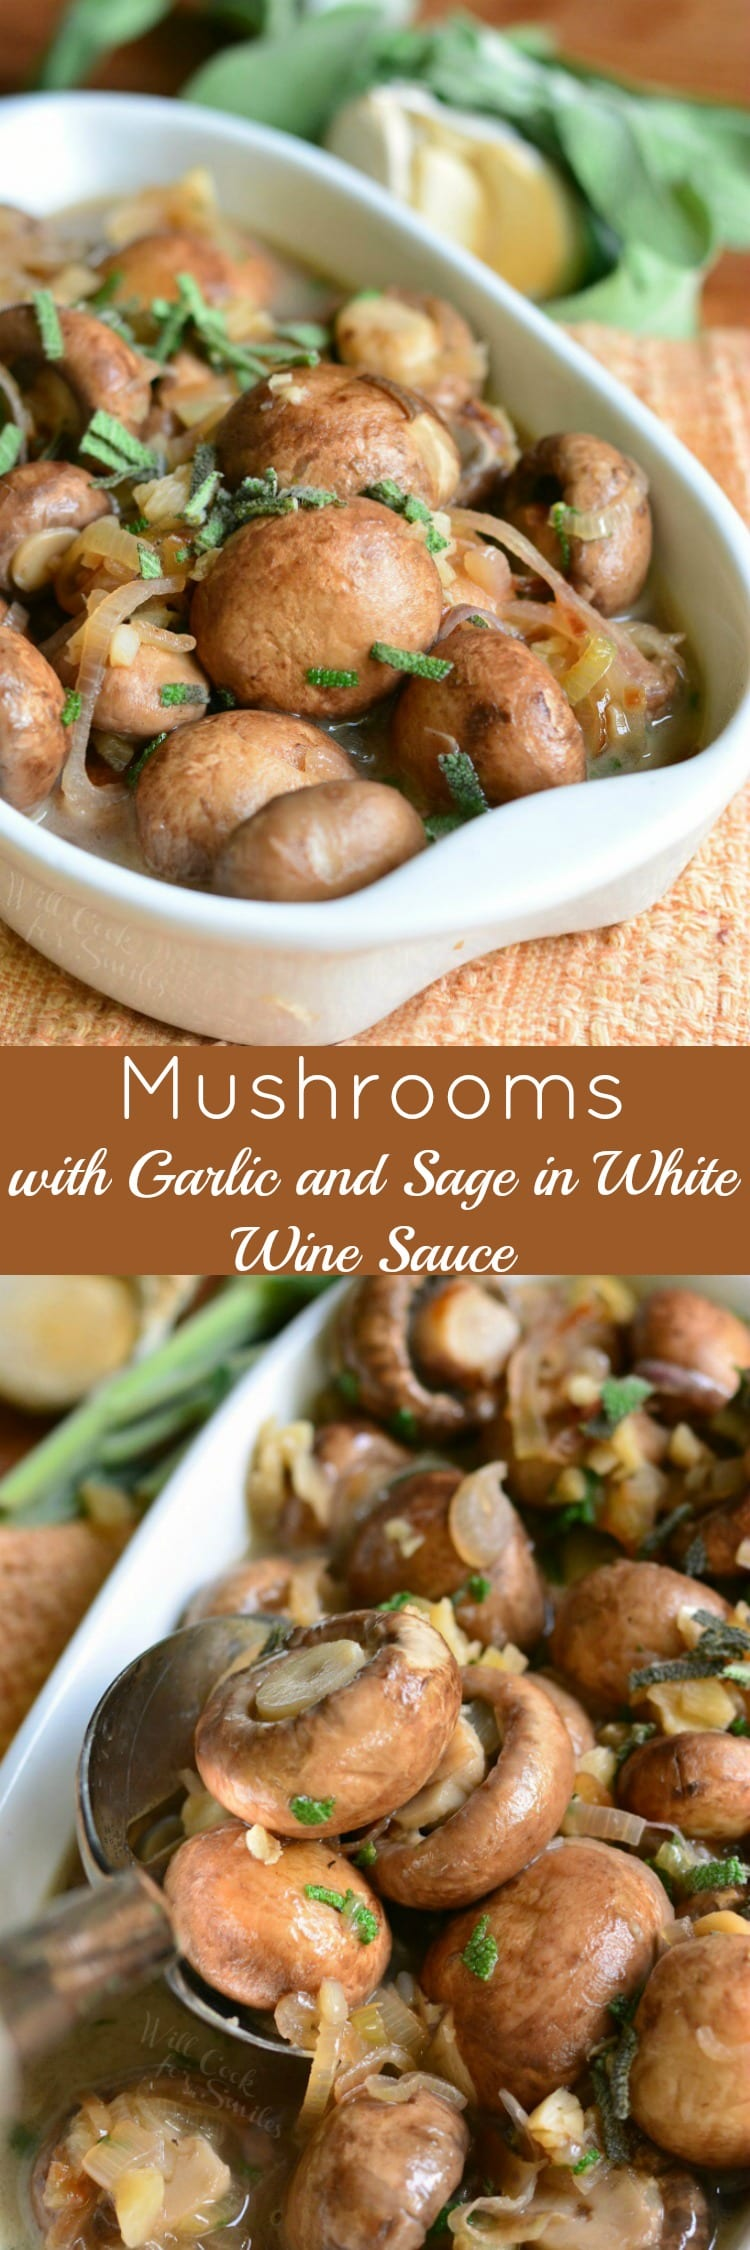 Mushrooms with Garlic and Sage in White Wine Sauce collage top picture mushrooms in baking dish bottom picture mushrooms being scooped out of baking dish with metal spoon